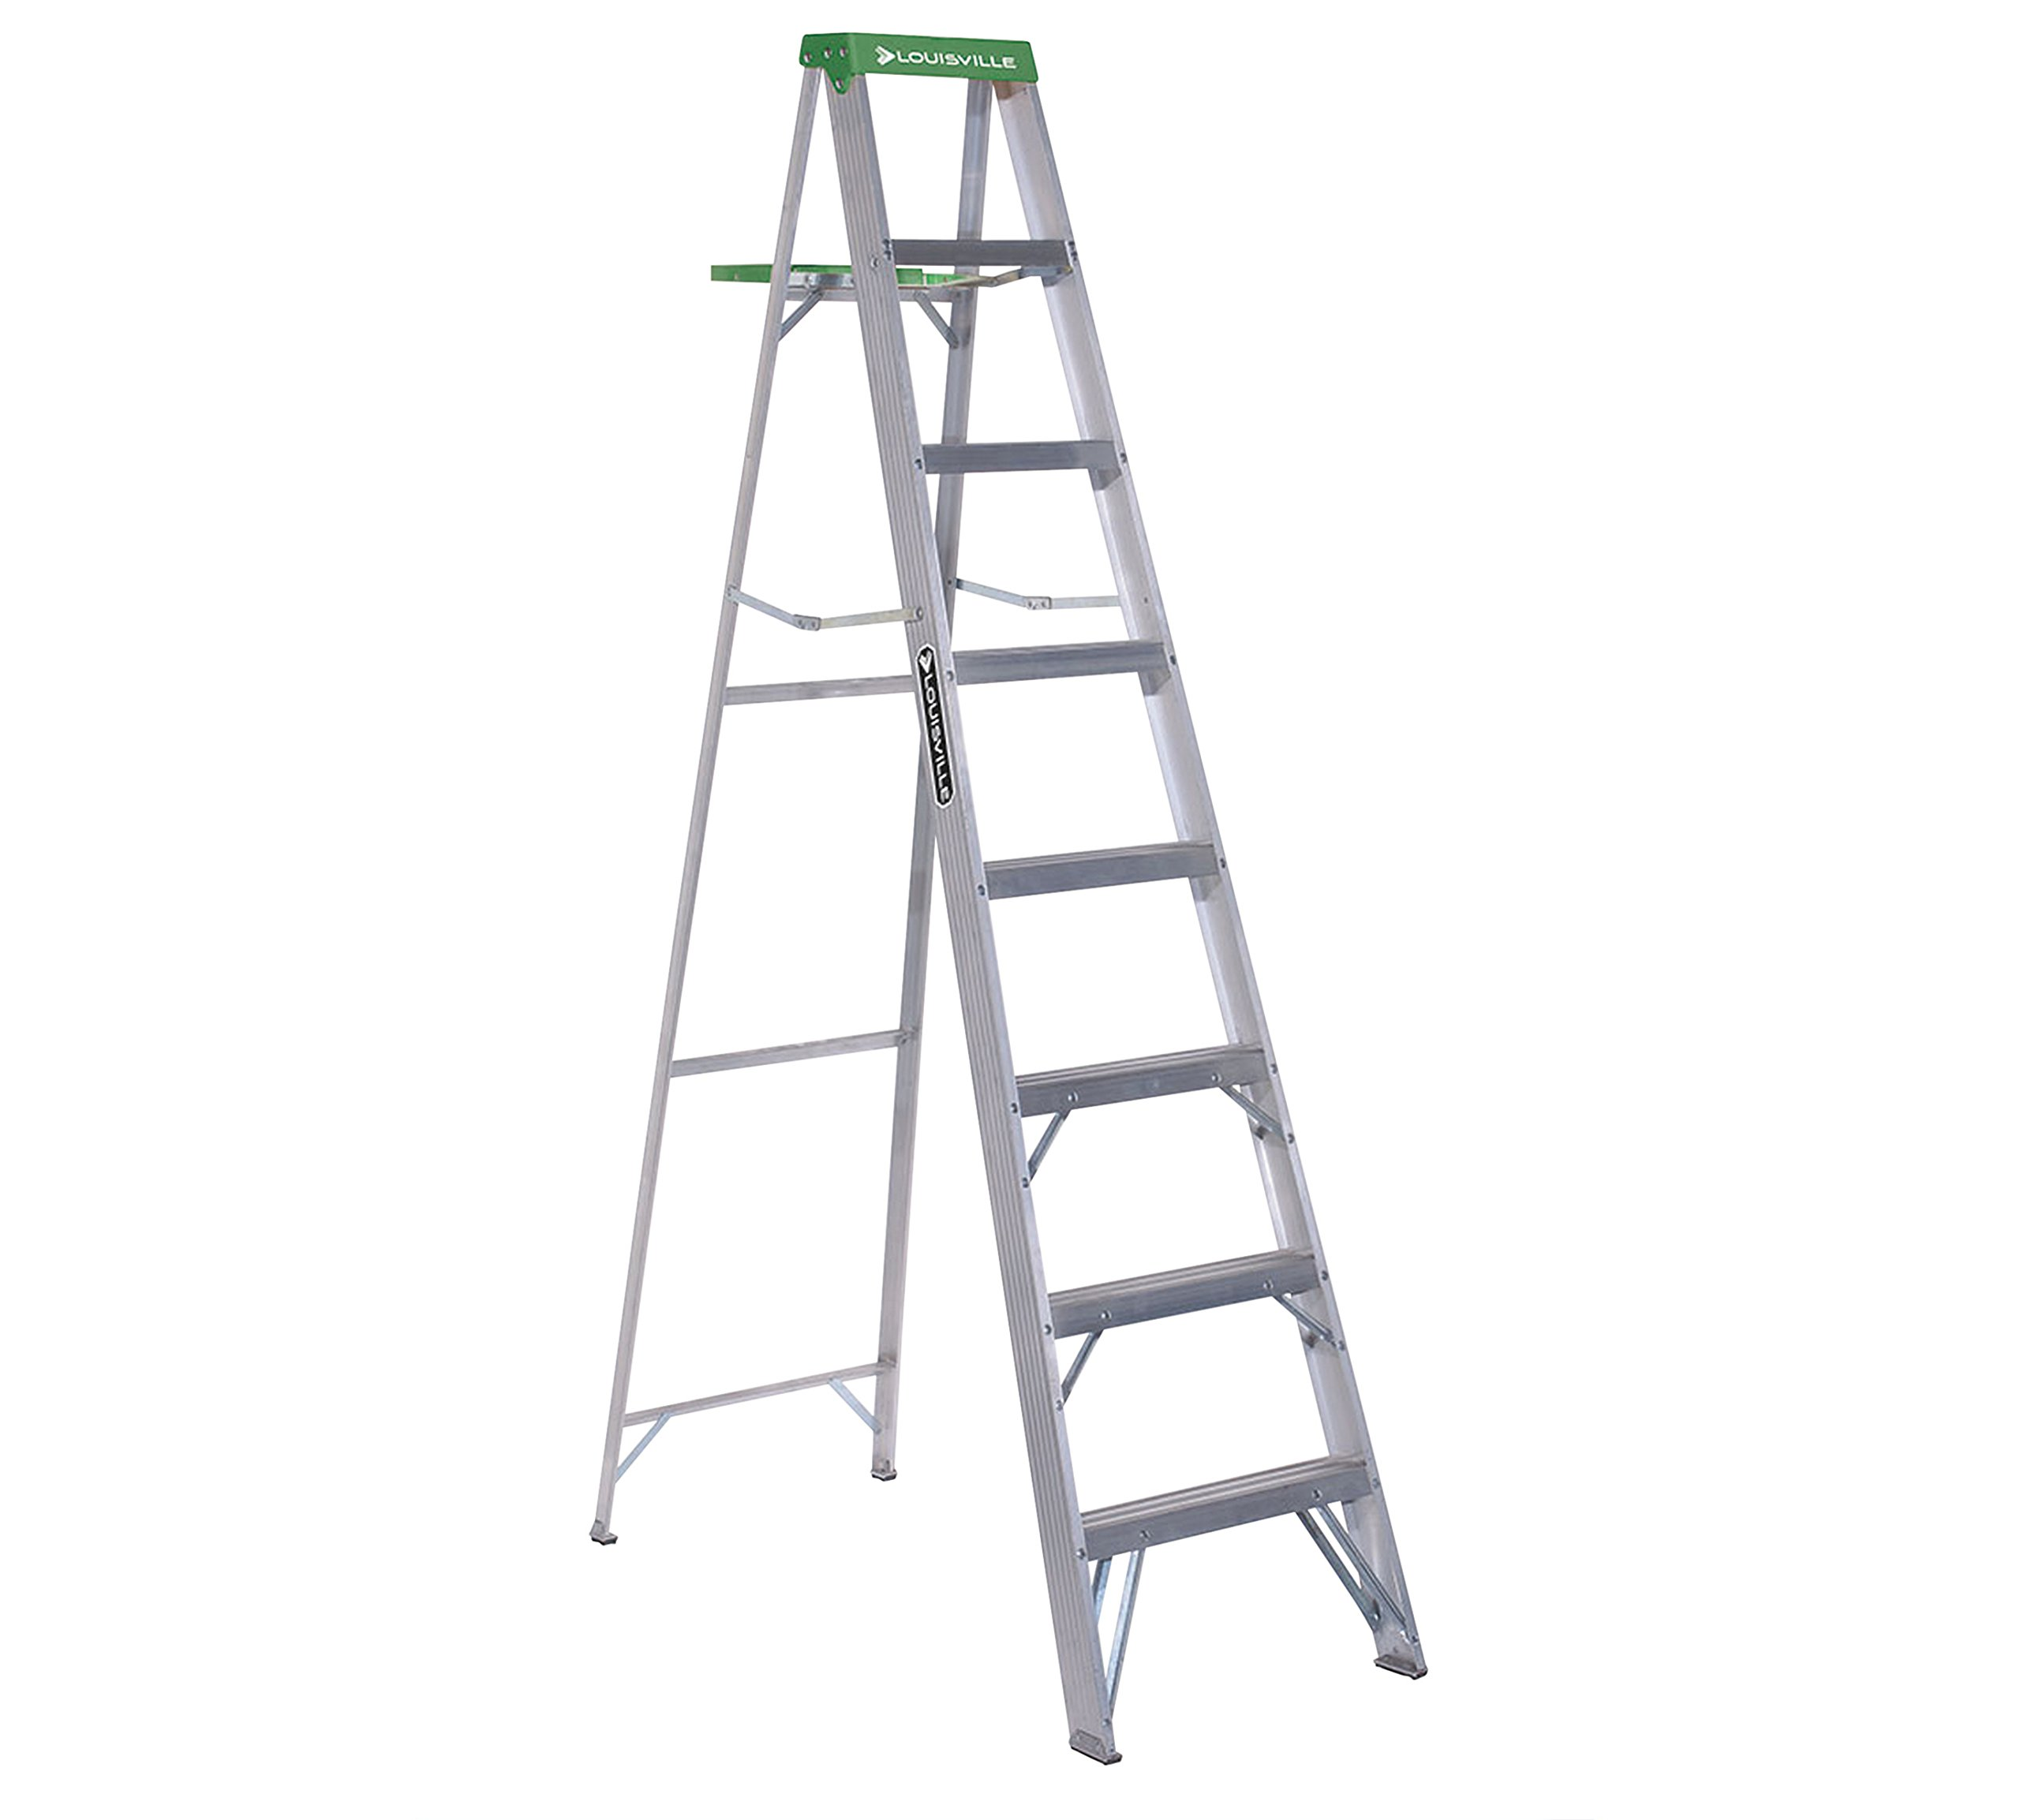 Lightweight Aluminum Molded Green Plastic Top 8ft Ladder by Louisville